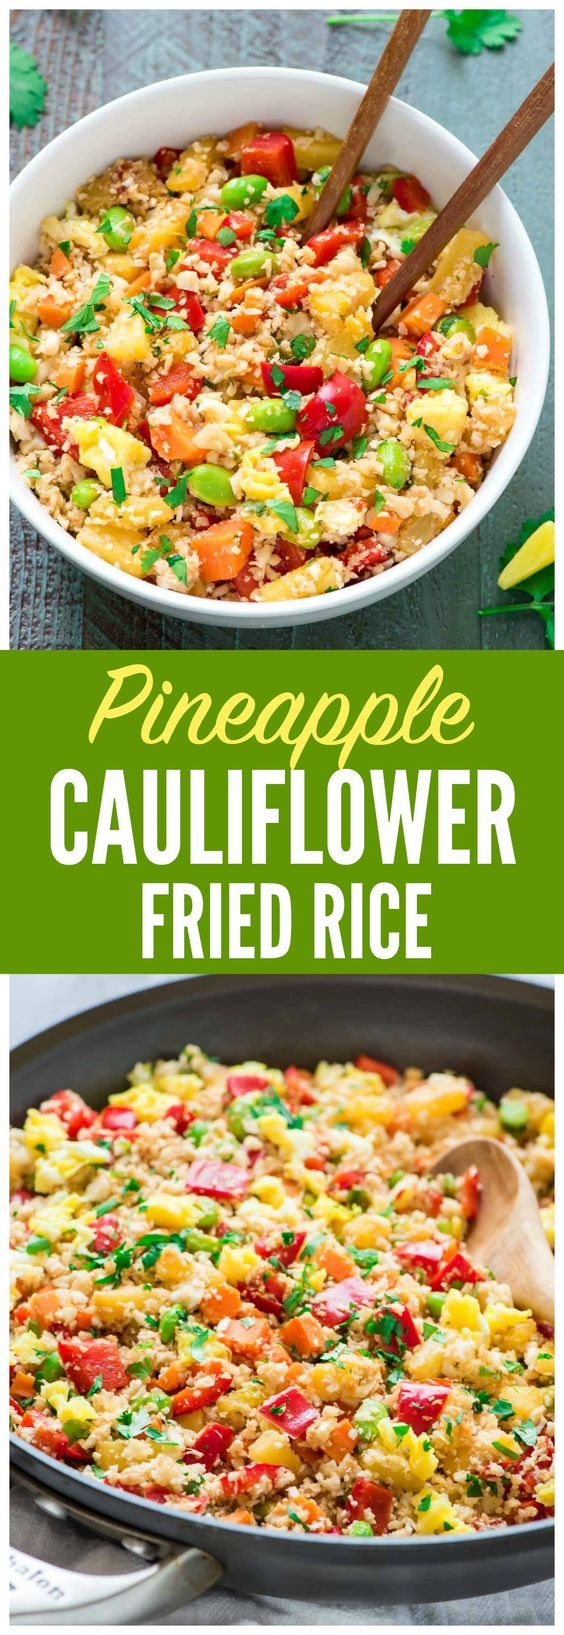 Easy Pineapple Cauliflower Fried Rice — Only 230 calories for a HUGE serving! Looks and tastes EXACTLY like regular fried rice but is healthy for you. Grain free, dairy free, low carb, and paleo. Recipe at wellplated.com @wellplated